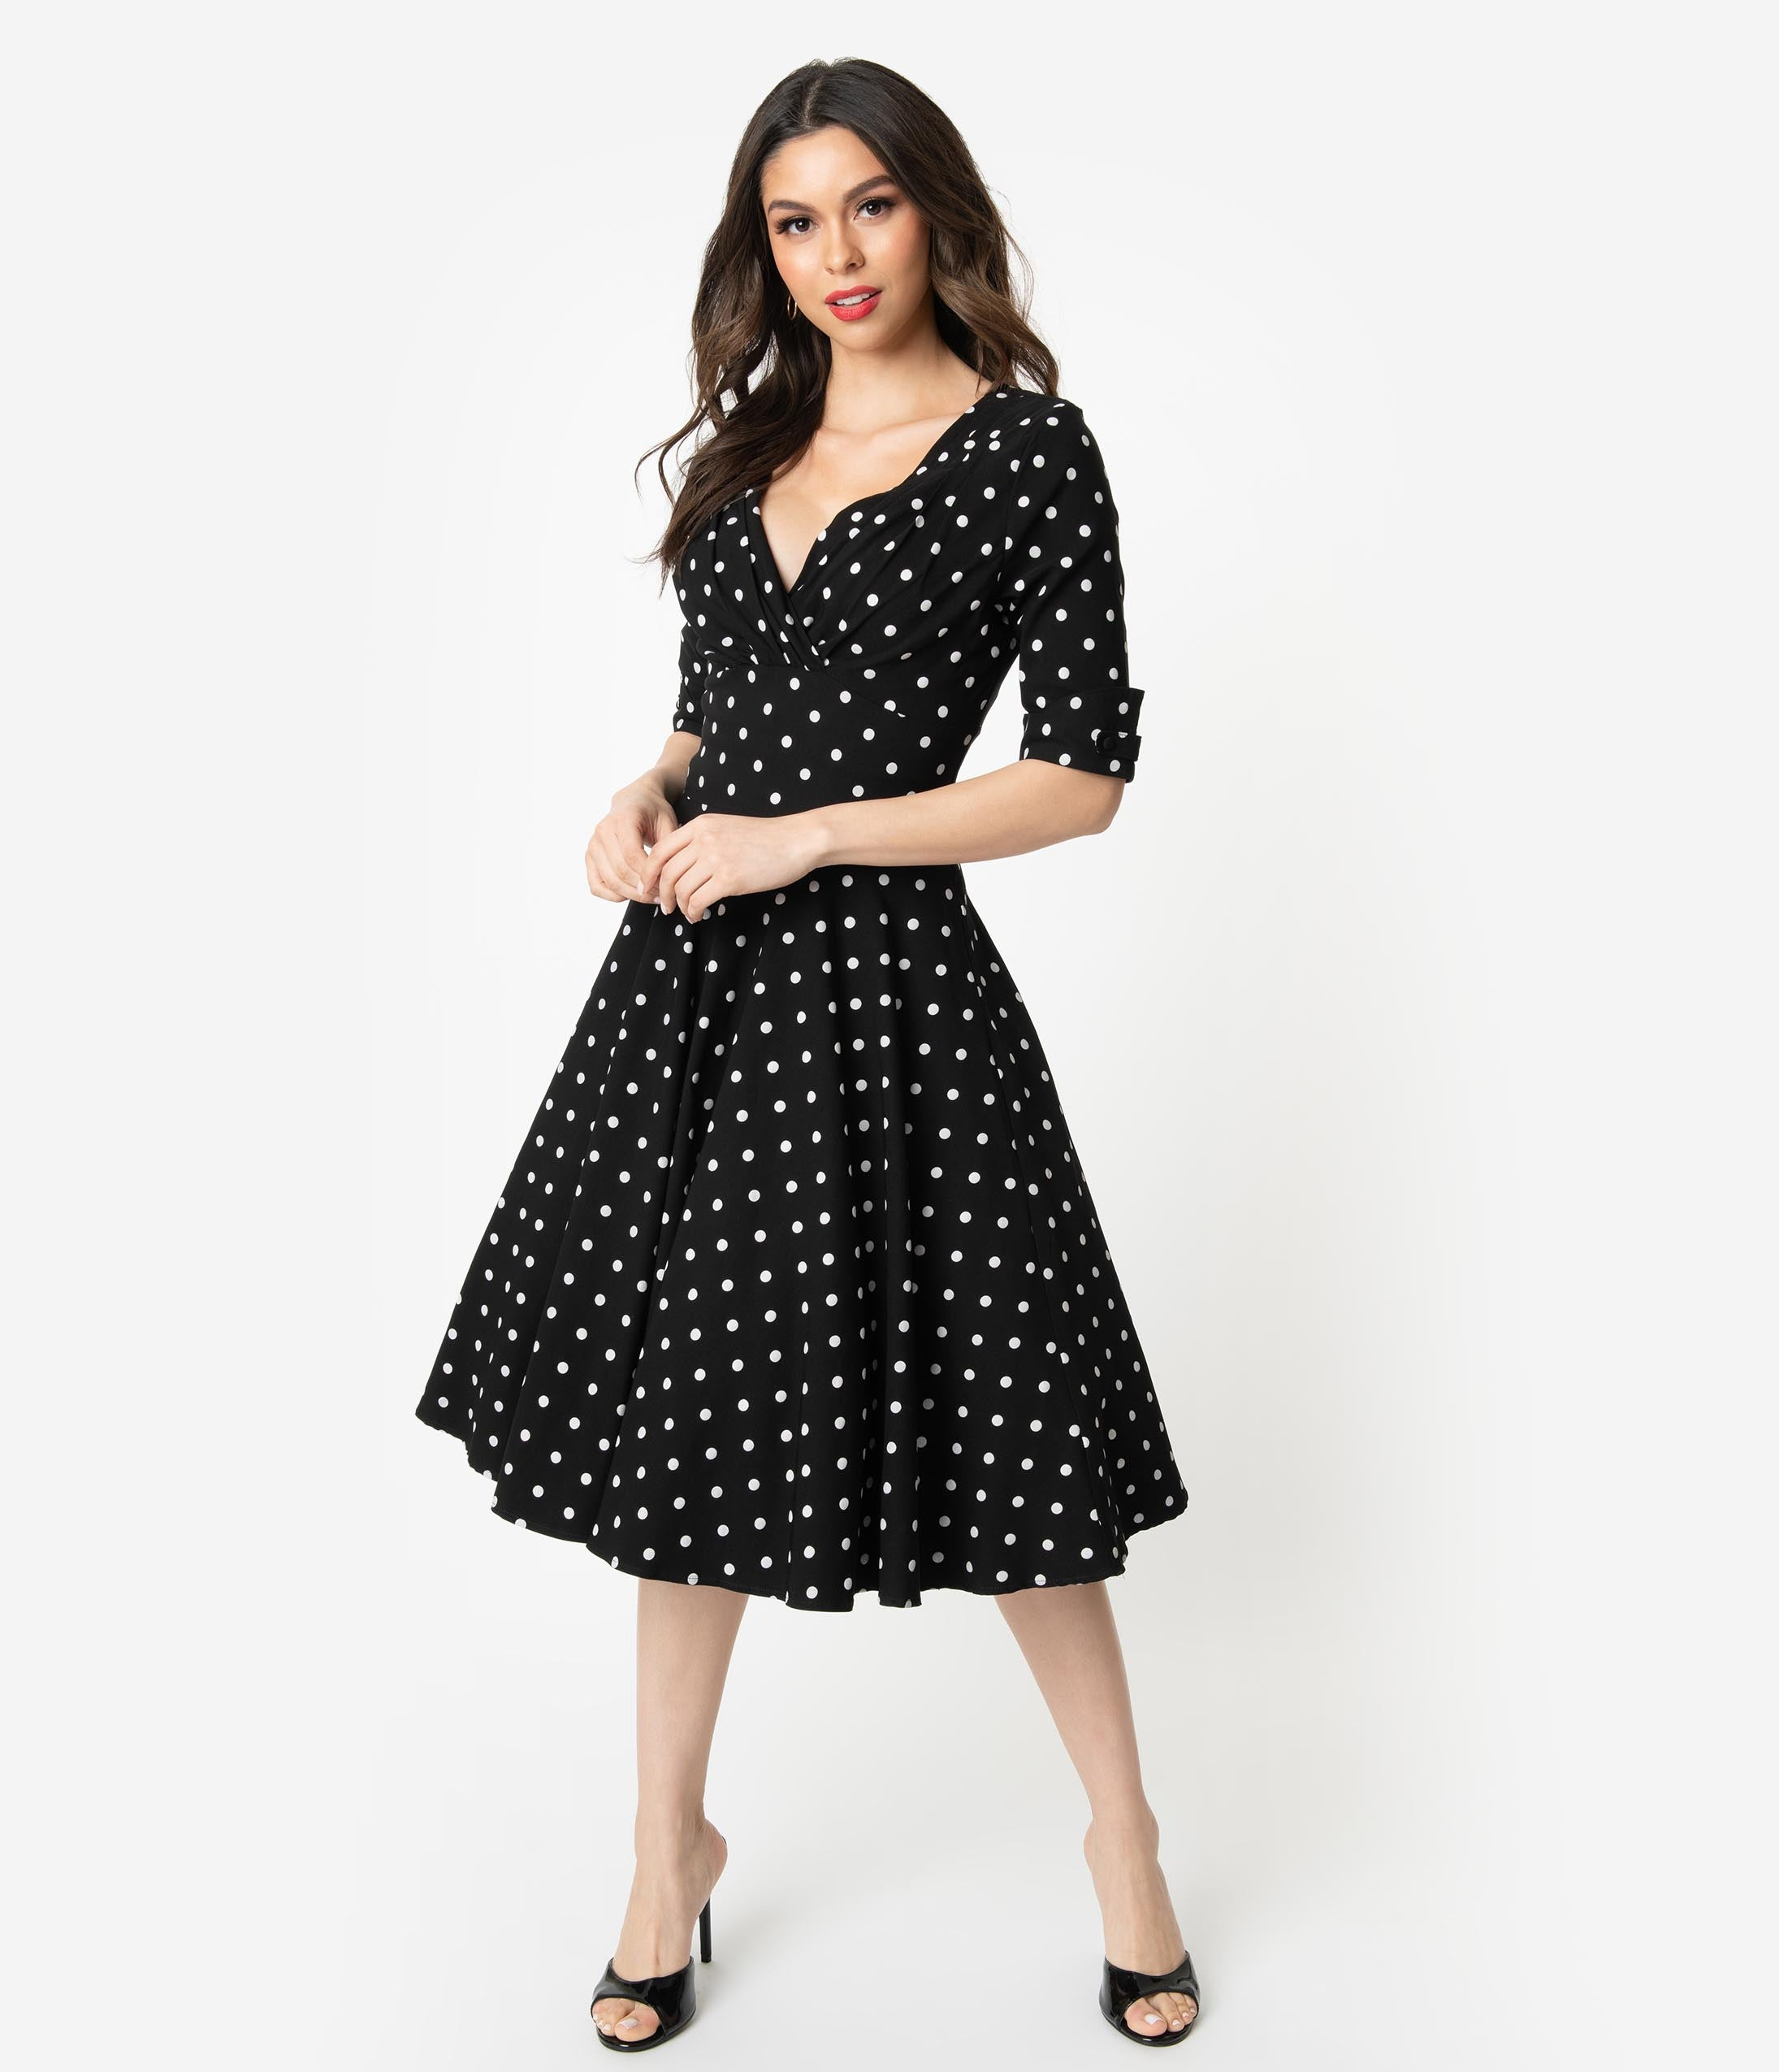 Rockabilly Dresses | Rockabilly Clothing | Viva Las Vegas Unique Vintage 1950S Black  White Polka Dot Delores Swing Dress With Sleeves $92.00 AT vintagedancer.com